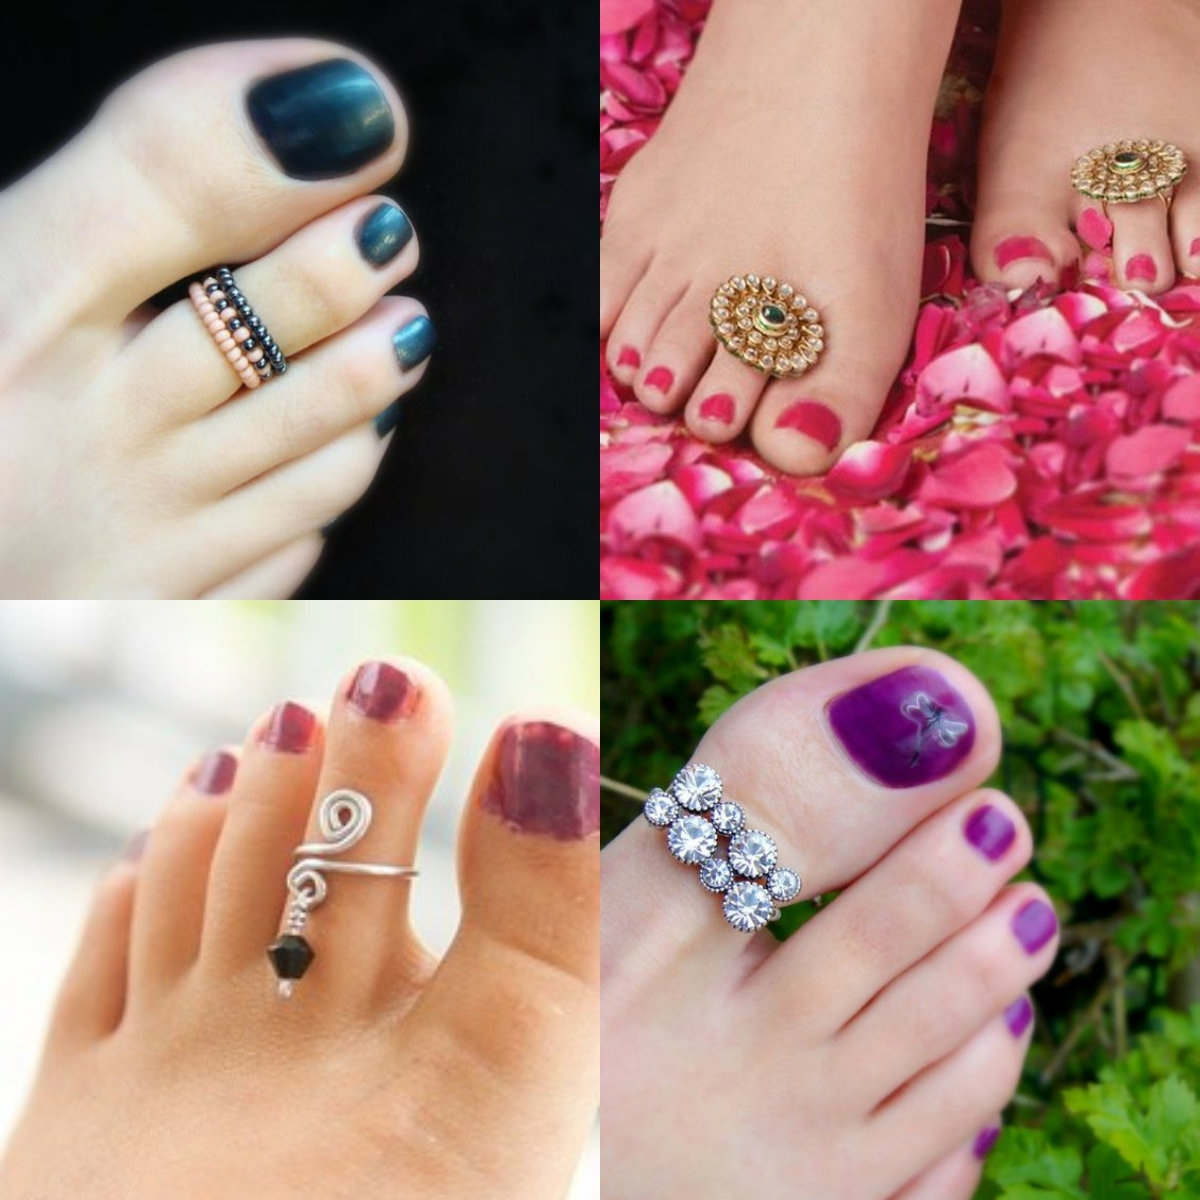 Affordable & Comfortable Toe Rings For Women | Trends4Us Inside Most Recent Toe Rings For Women (View 2 of 15)